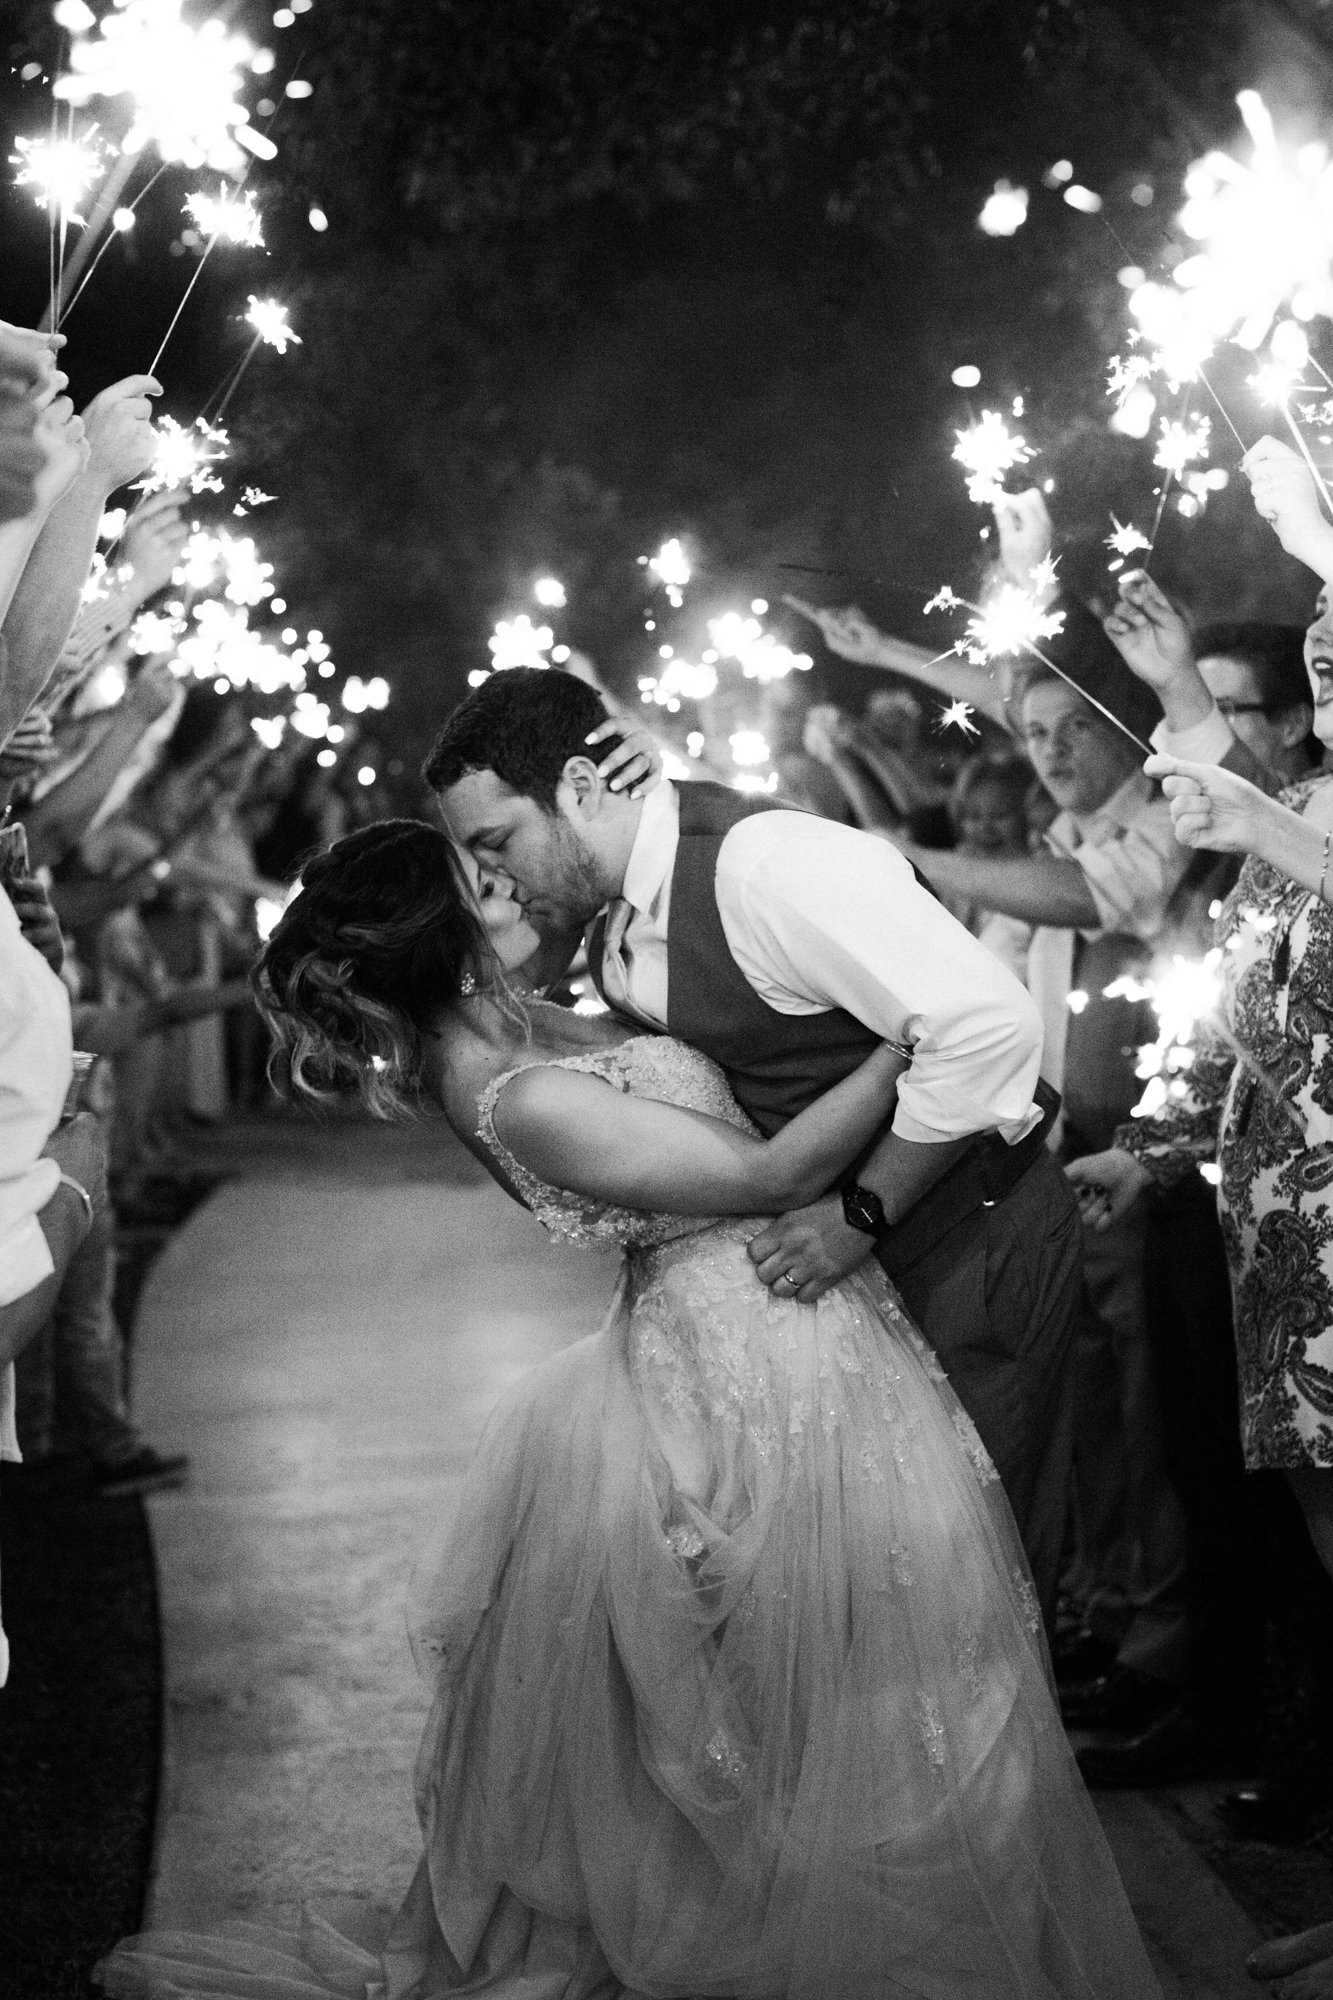 Elegant Spring Vineyard Wedding | Film Wedding Photographer | Austin Wedding Photographer | Romantic Sparkler Exit, Sparkler Exit Photography | Britni Dean Photography // britnidean.com